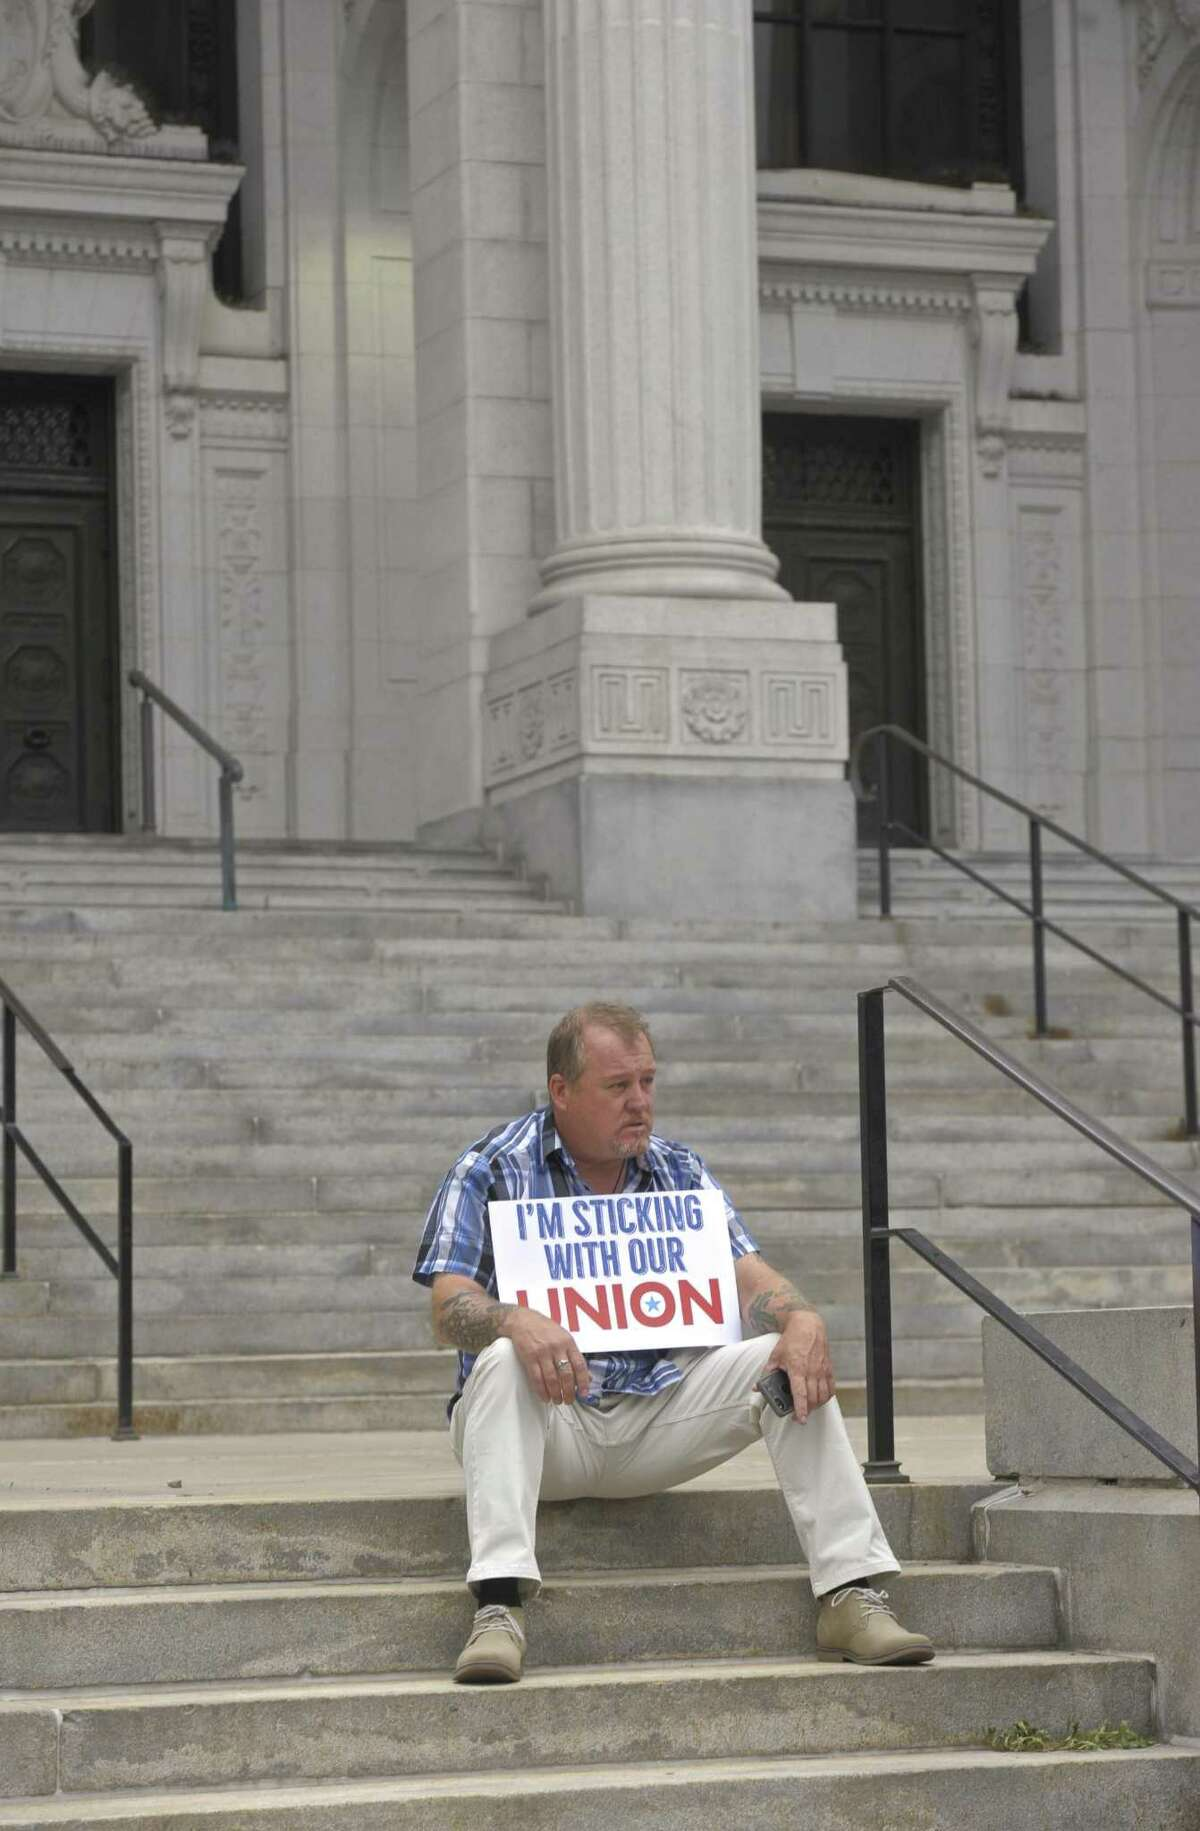 David Roche, of Bristol, president of Connecticut State Building Trades, sits on the steps of the Connecticut Supreme Court on Wednesday afternoon, waiting for an organized labor news conference in response to the U.S. Supreme Court on Janus v. AFSCME Council case.